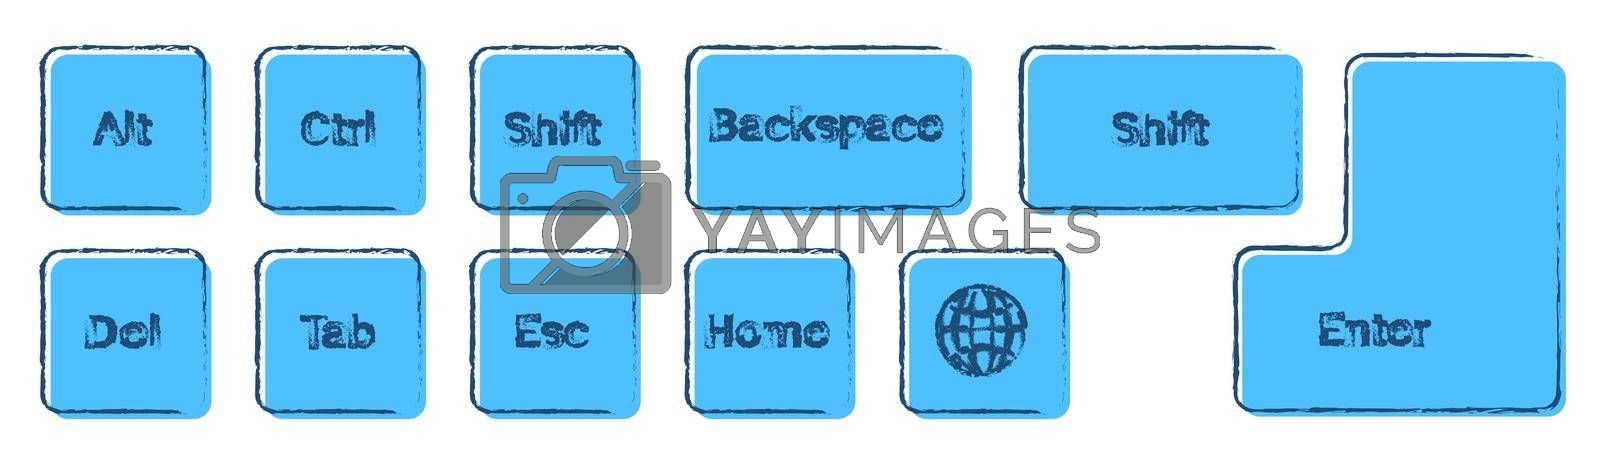 set of additional keyboard keys on a white background. Alt, Ctrl, Enter, Backspace, Esc, globe, Shift drawn in ink and blue colors. Isolated vector